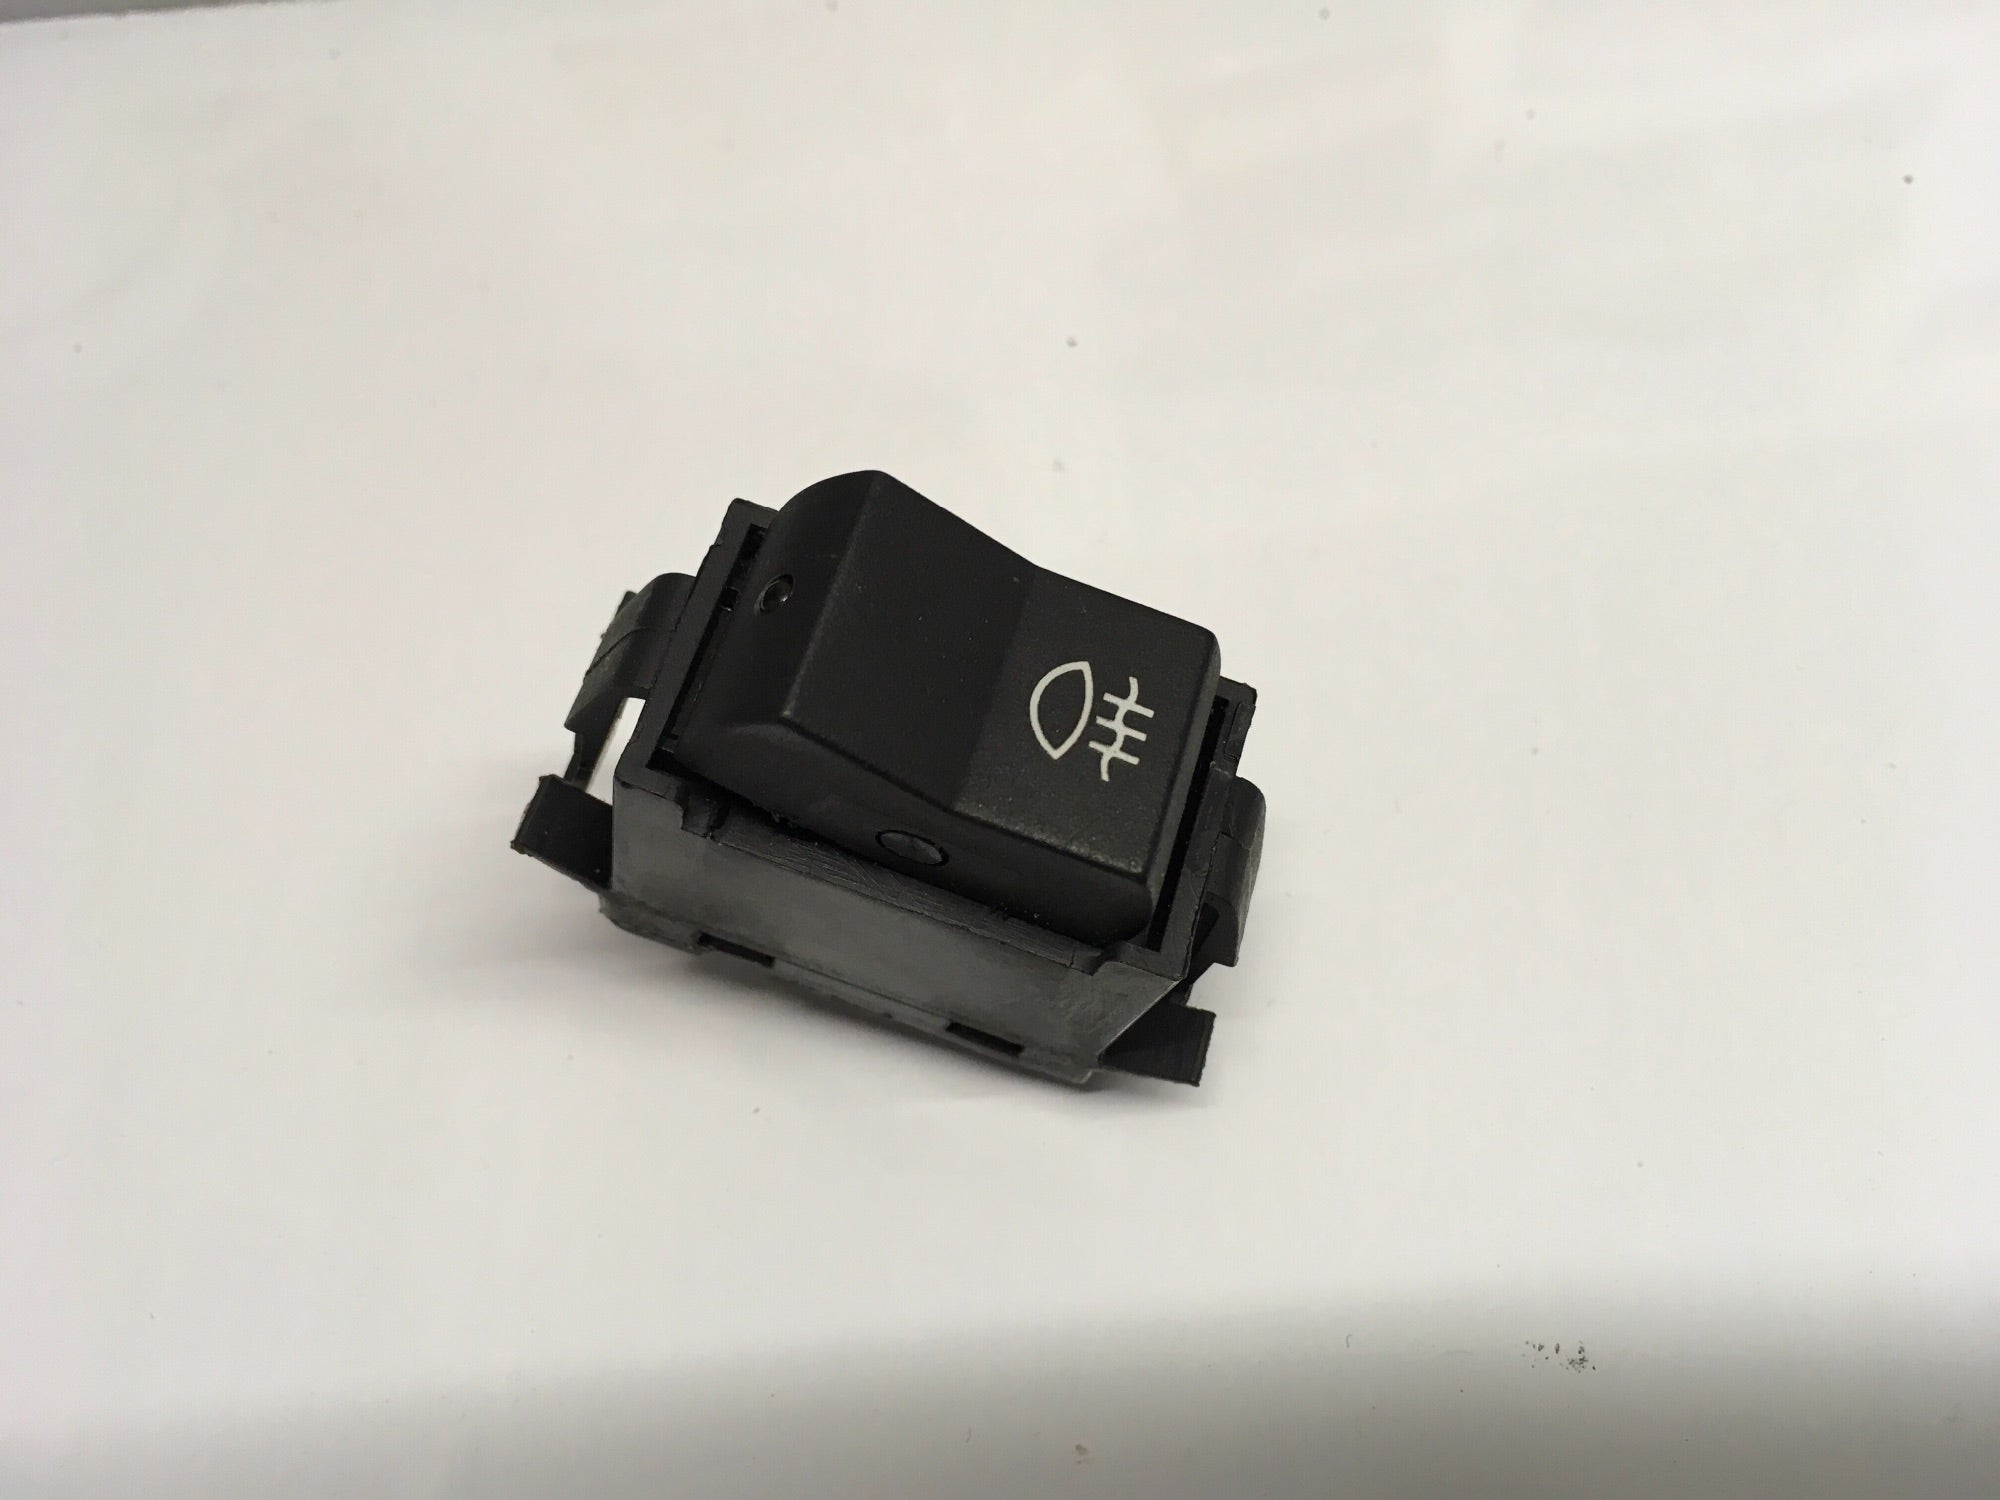 Porsche 924/944 rear fog light switch. 477 941 535. - Woolies Workshop - Porsche 924 944 spares